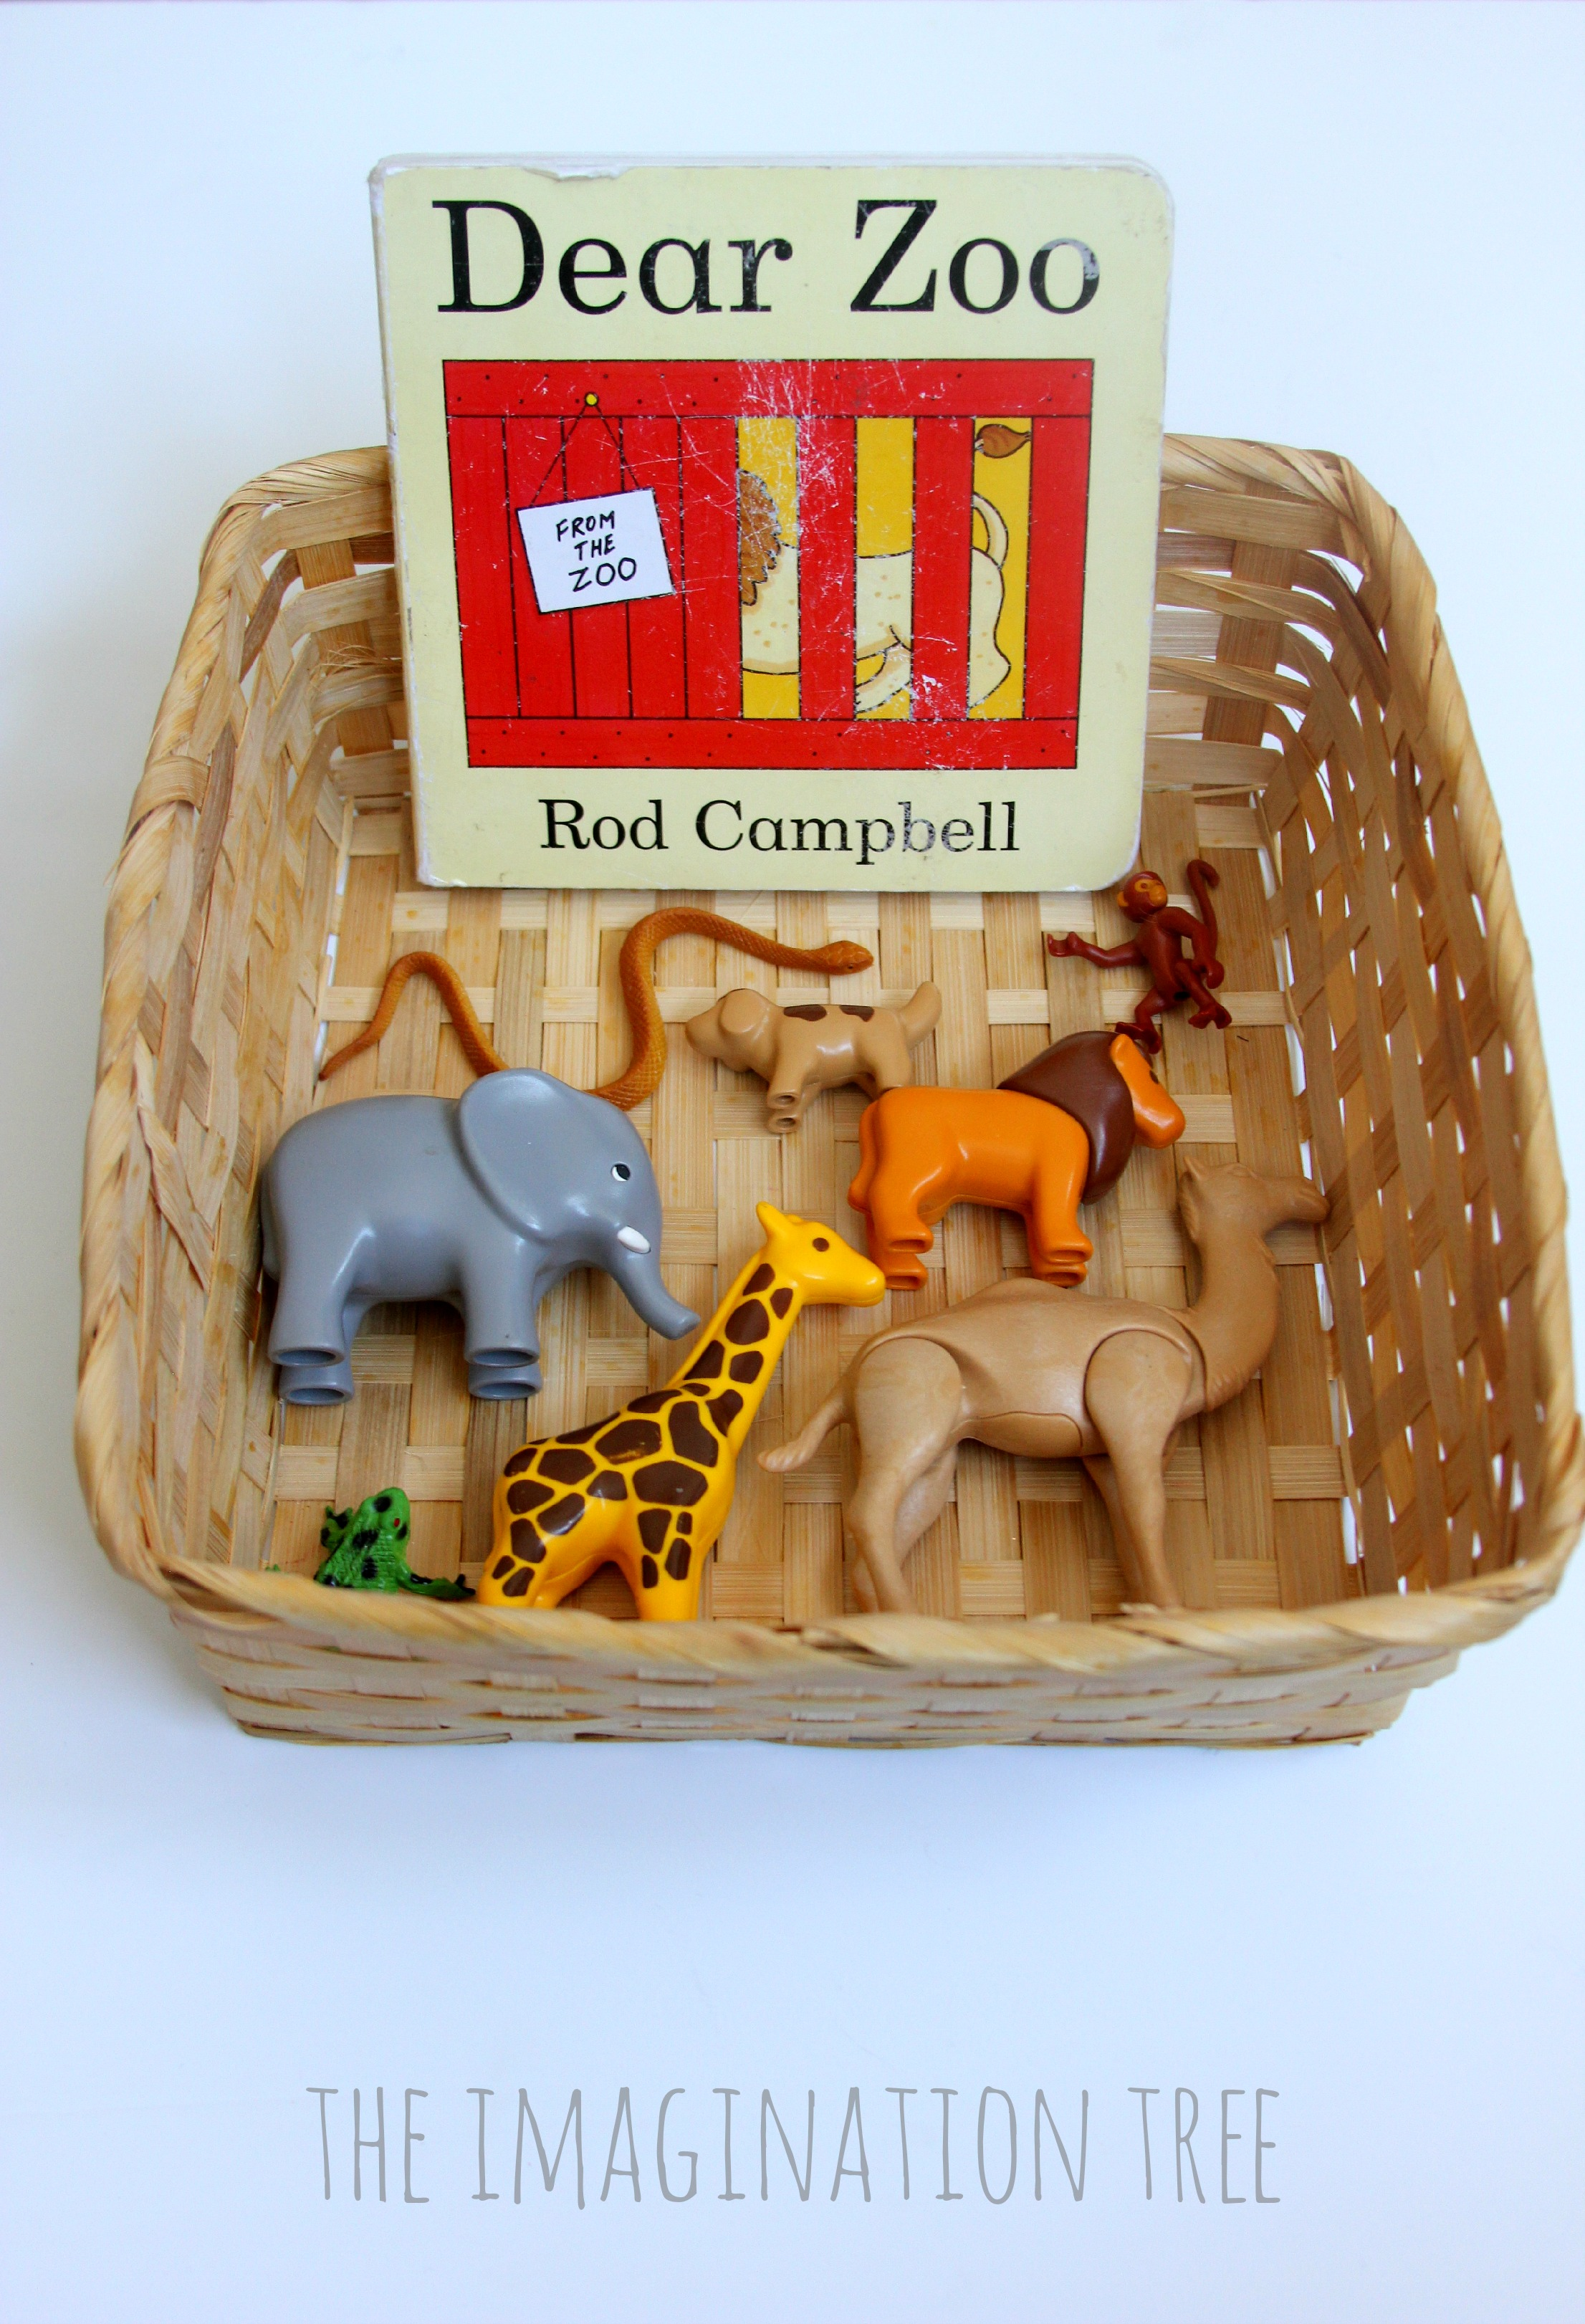 dear zoo storytelling basket for toddlers   the imagination tree